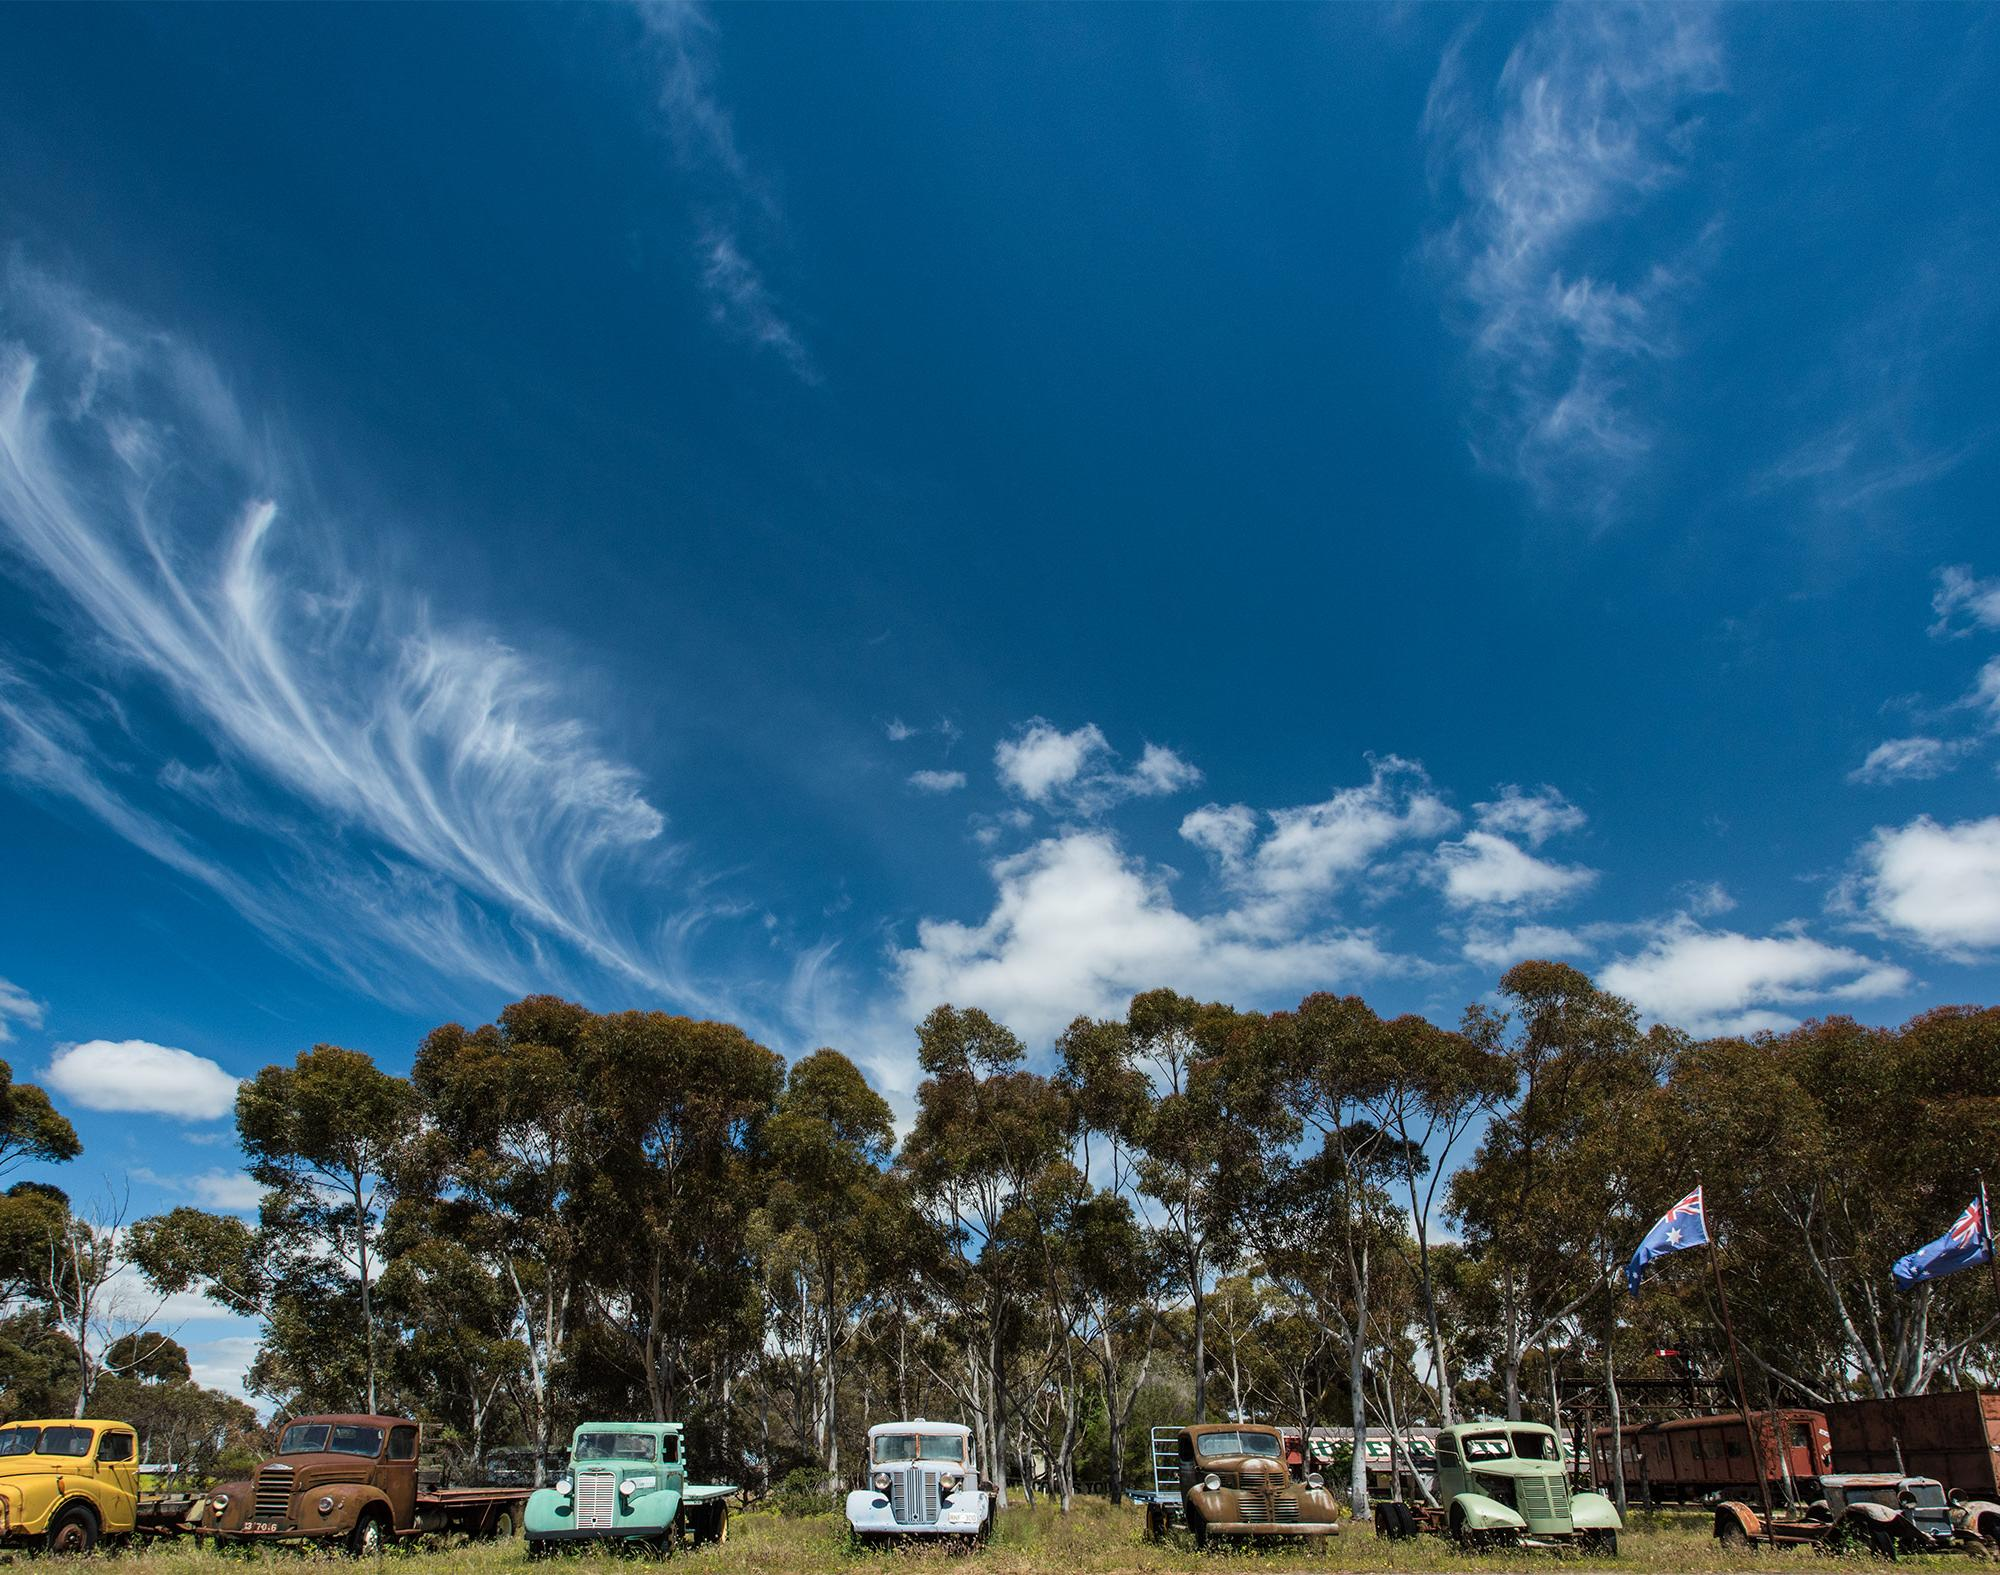 Old-Trucks-at-Tailem-Bend